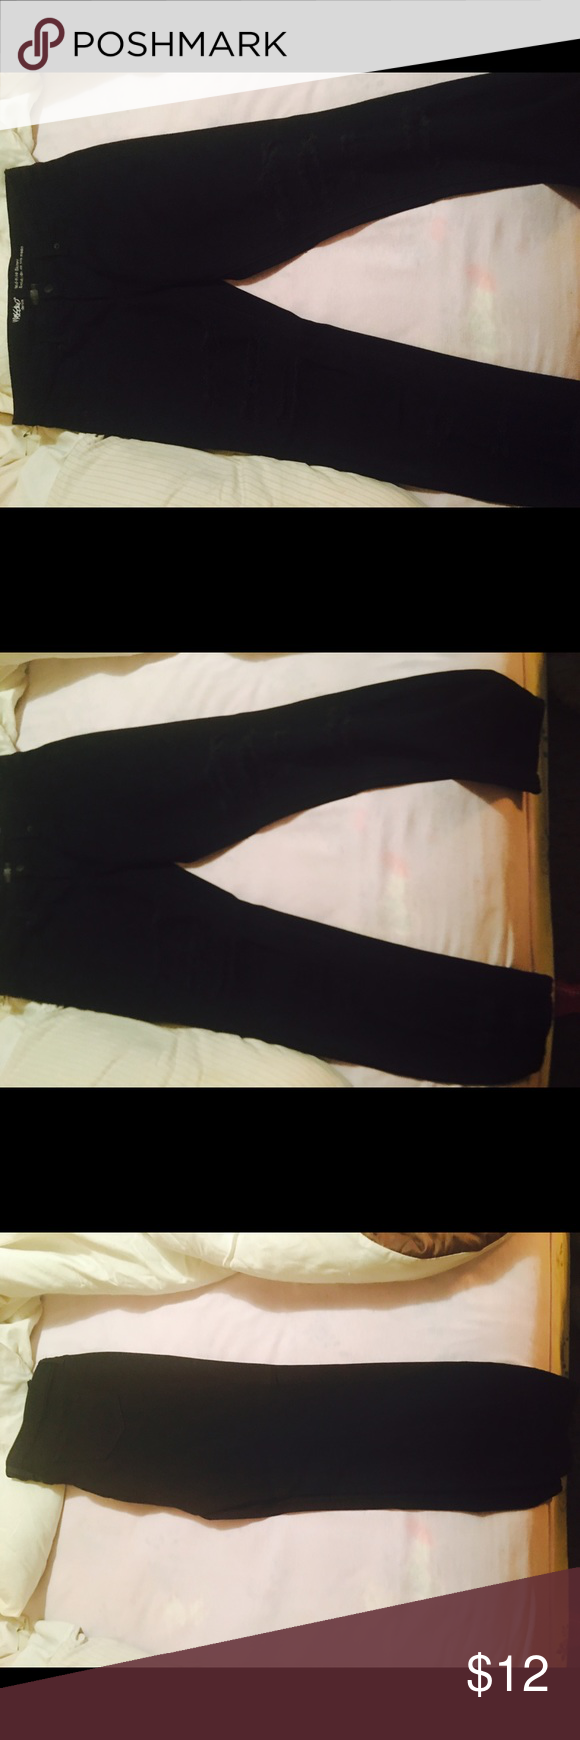 Black denim with rips in the leg too small Black denim jeans with rips cute comfortable i have three pair wore once Mossimo Supply Co Jeans Skinny